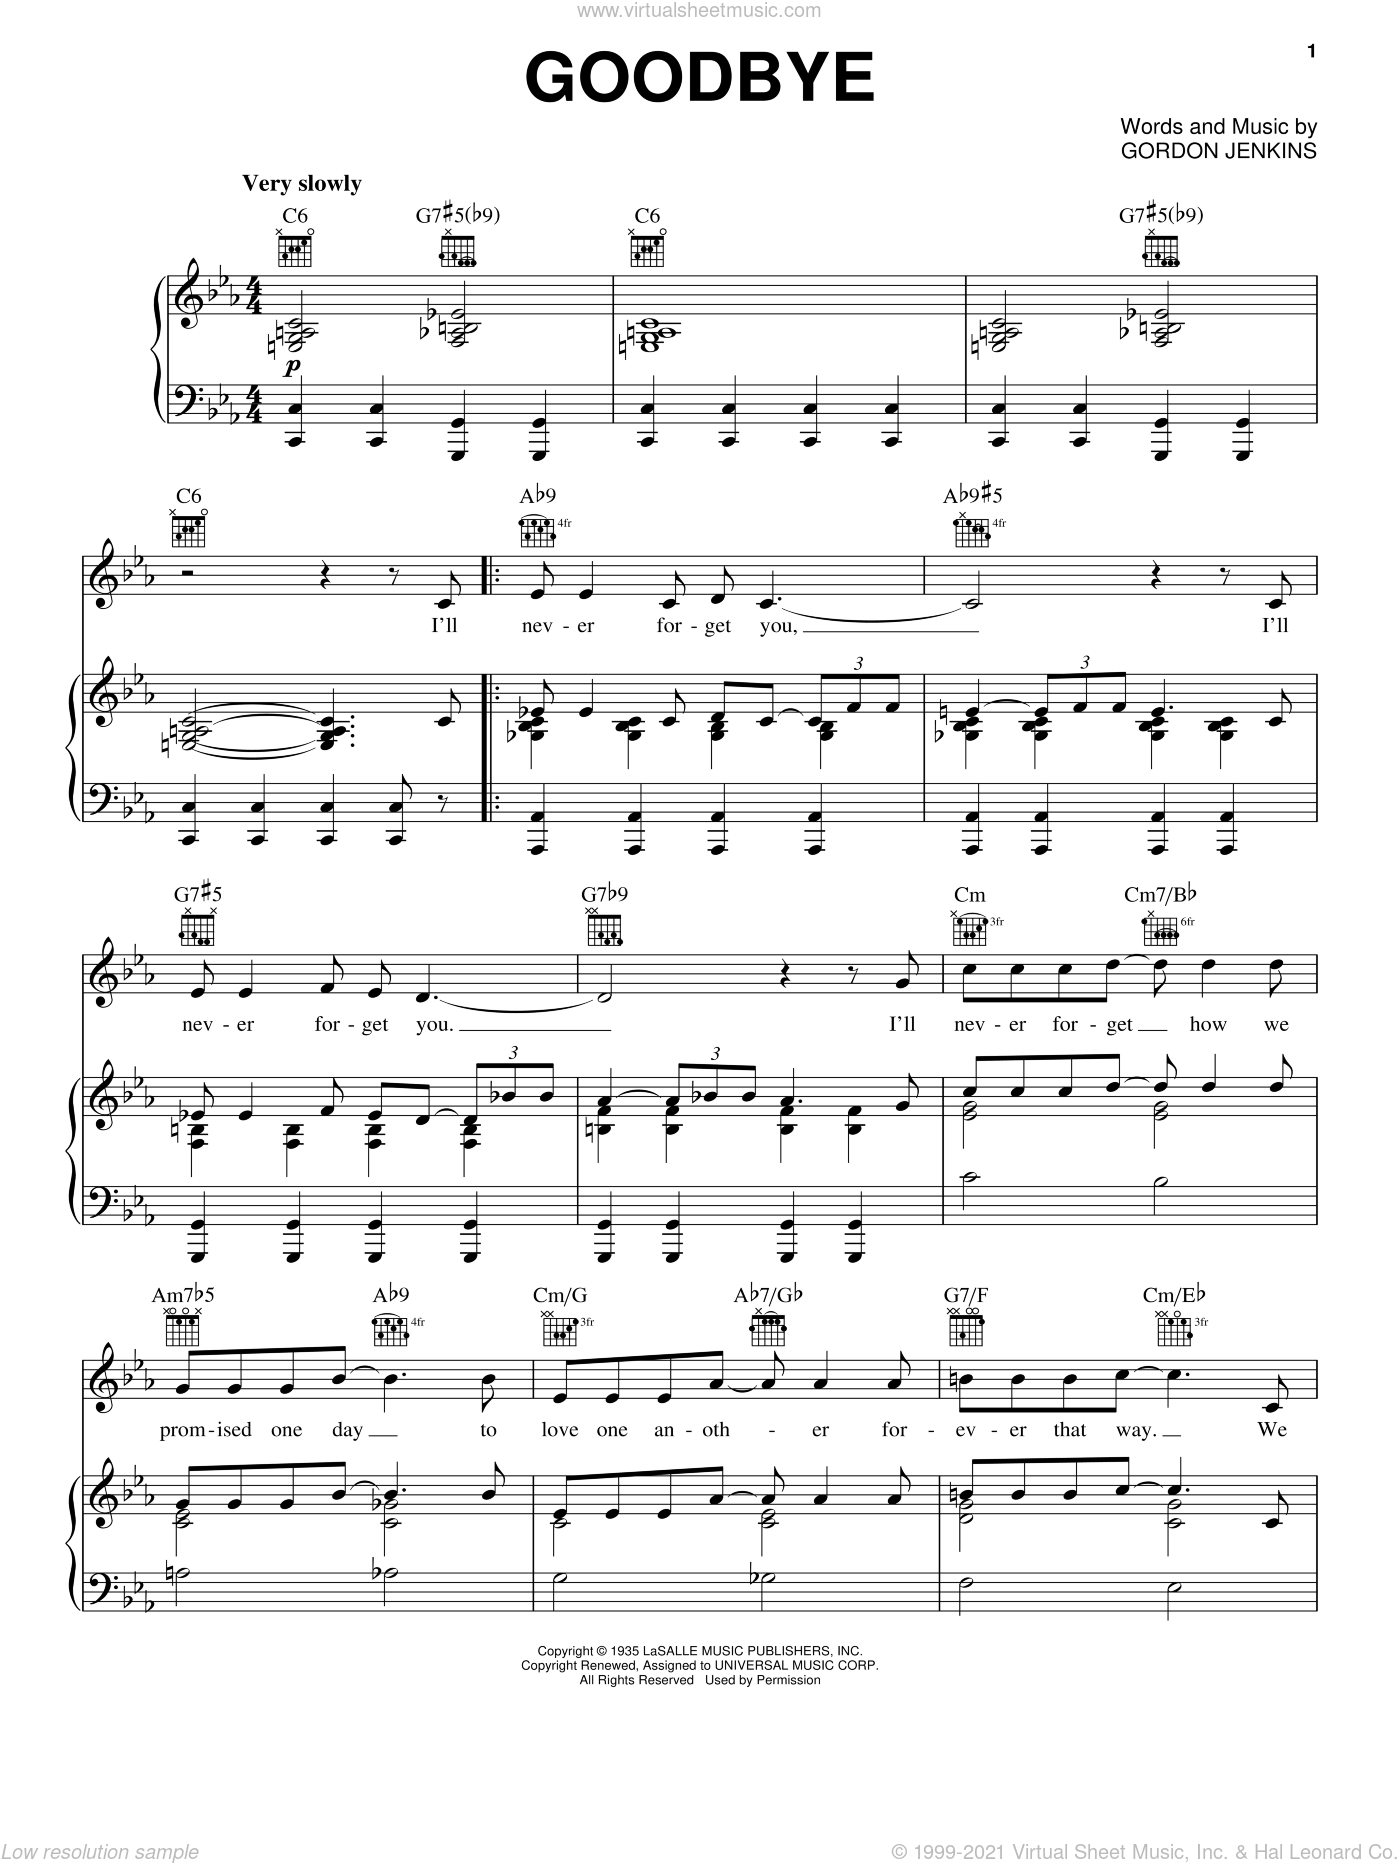 Goodbye sheet music for voice, piano or guitar by Gordon Jenkins, Benny Goodman and Rosemary Clooney. Score Image Preview.